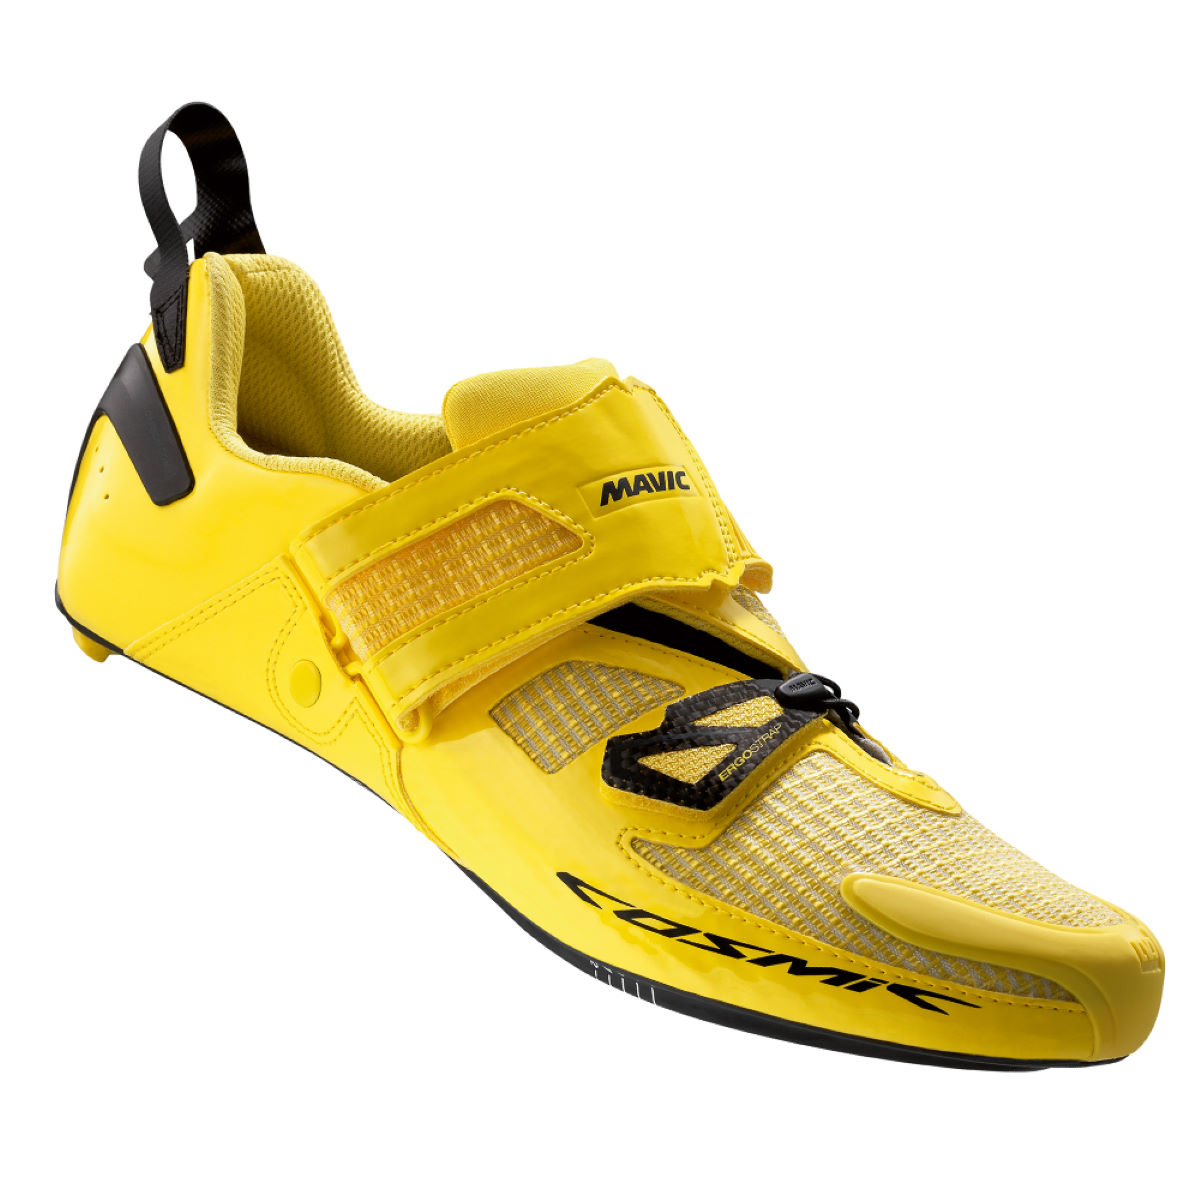 Mavic Cosmic Ultimate Triathlon Shoes - Triatlo Tênis